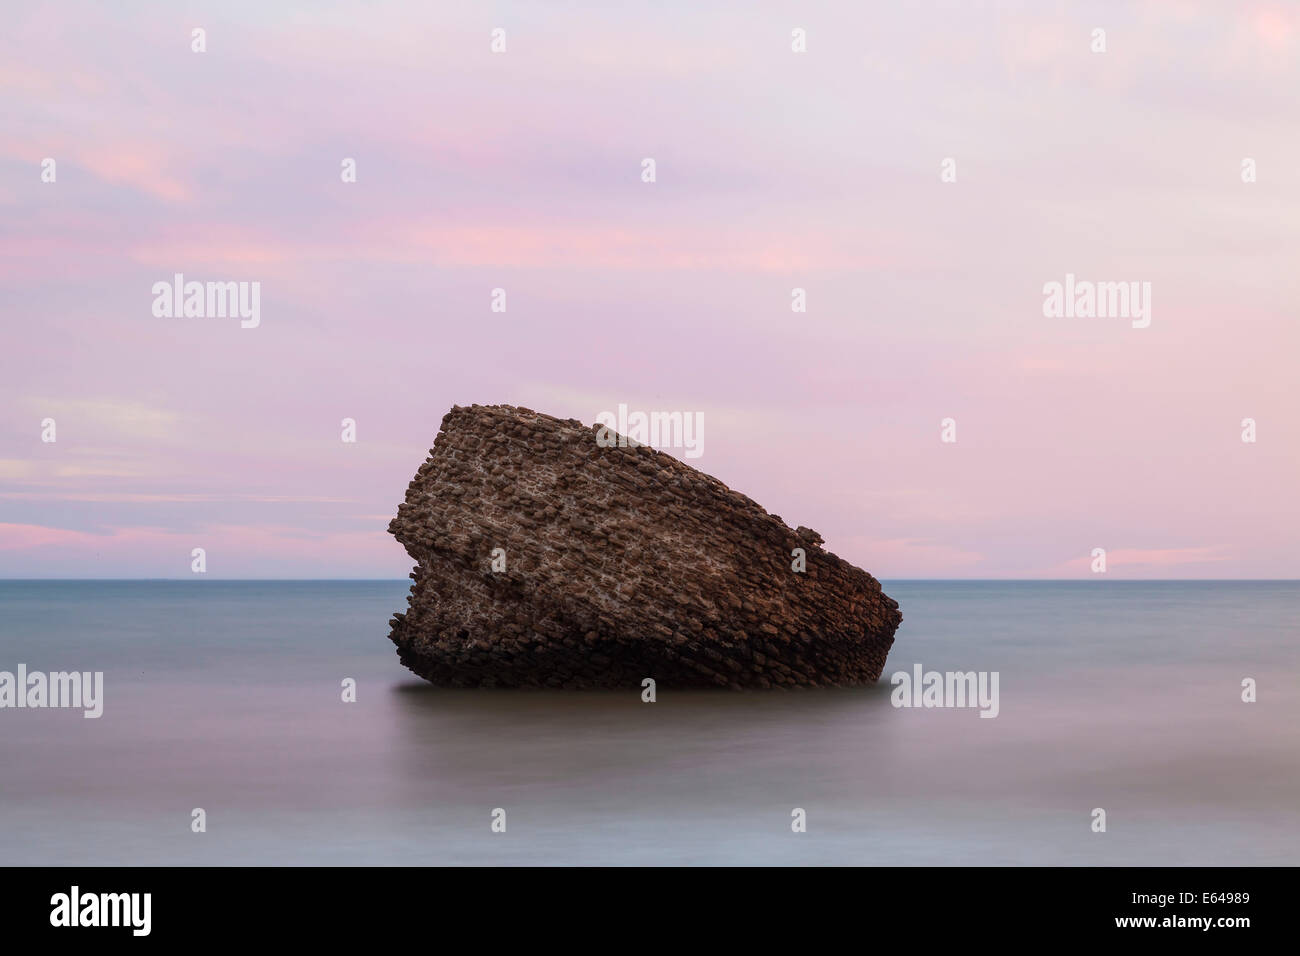 Rock (an old watch tower or beacon) at Matalascañas beach at sunset, Andalucia, Spain Stock Photo